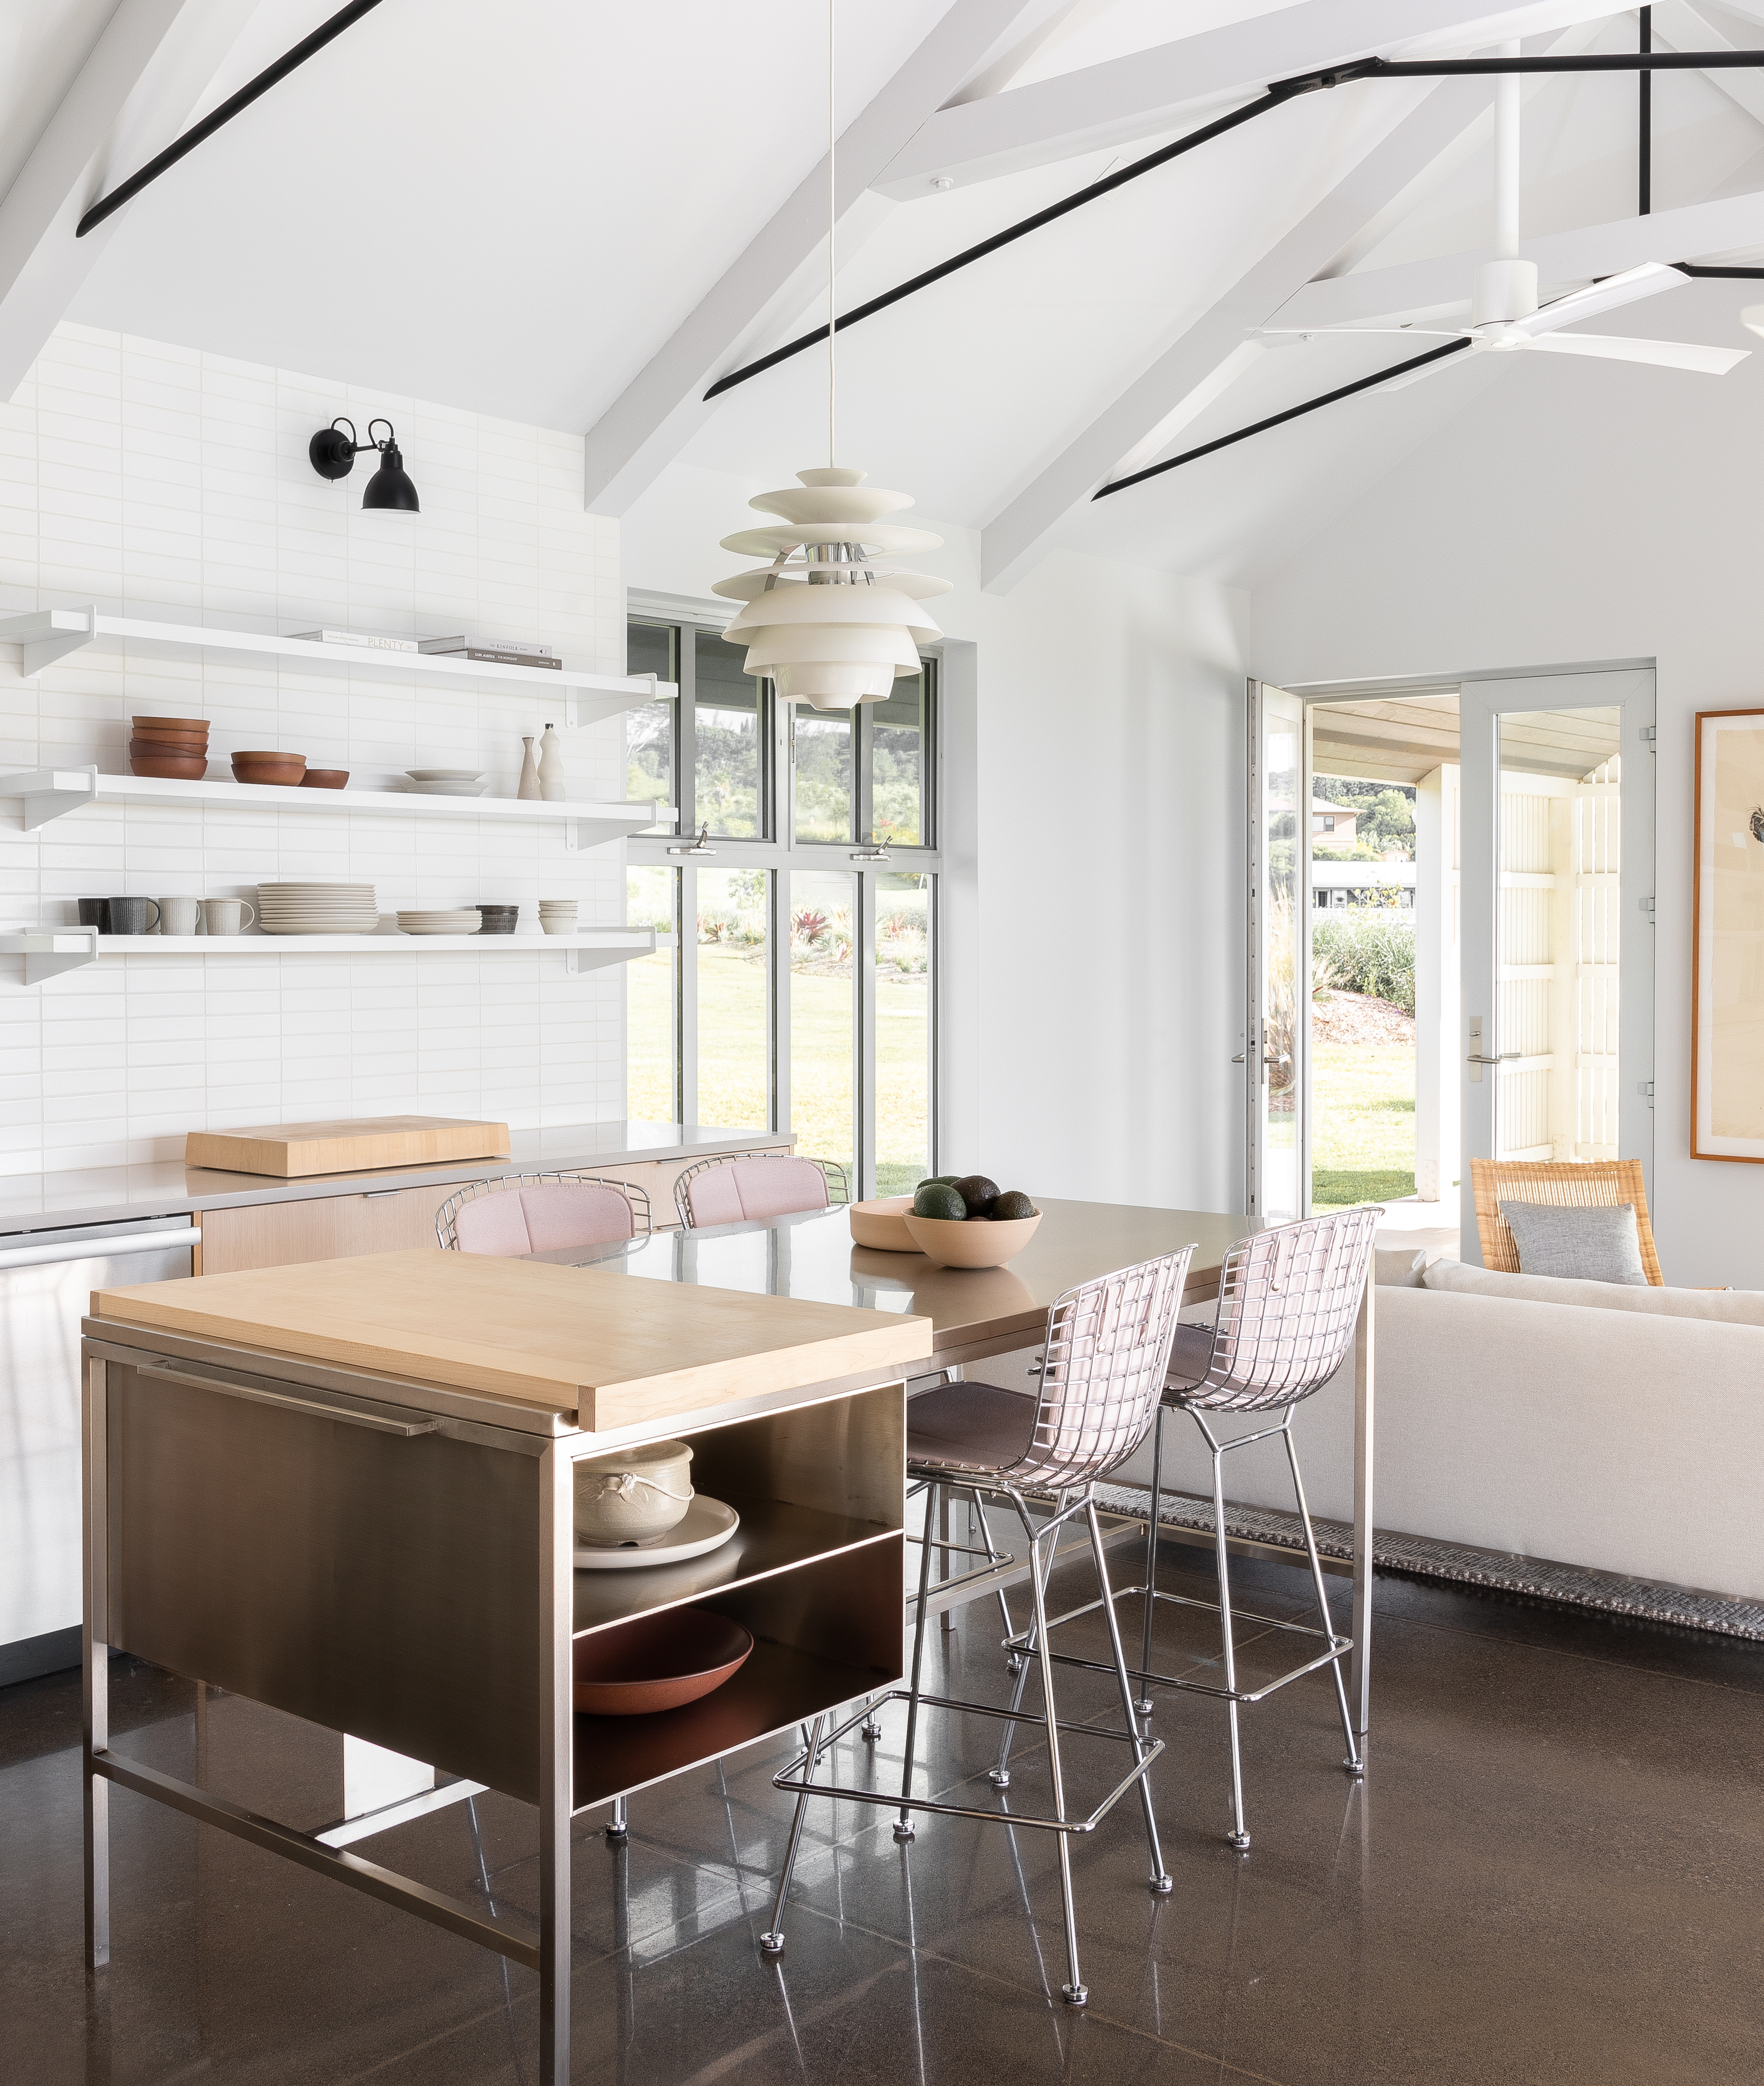 Kitchen lighting with a diffuse overhead and focussed wall sconces for task lighting.